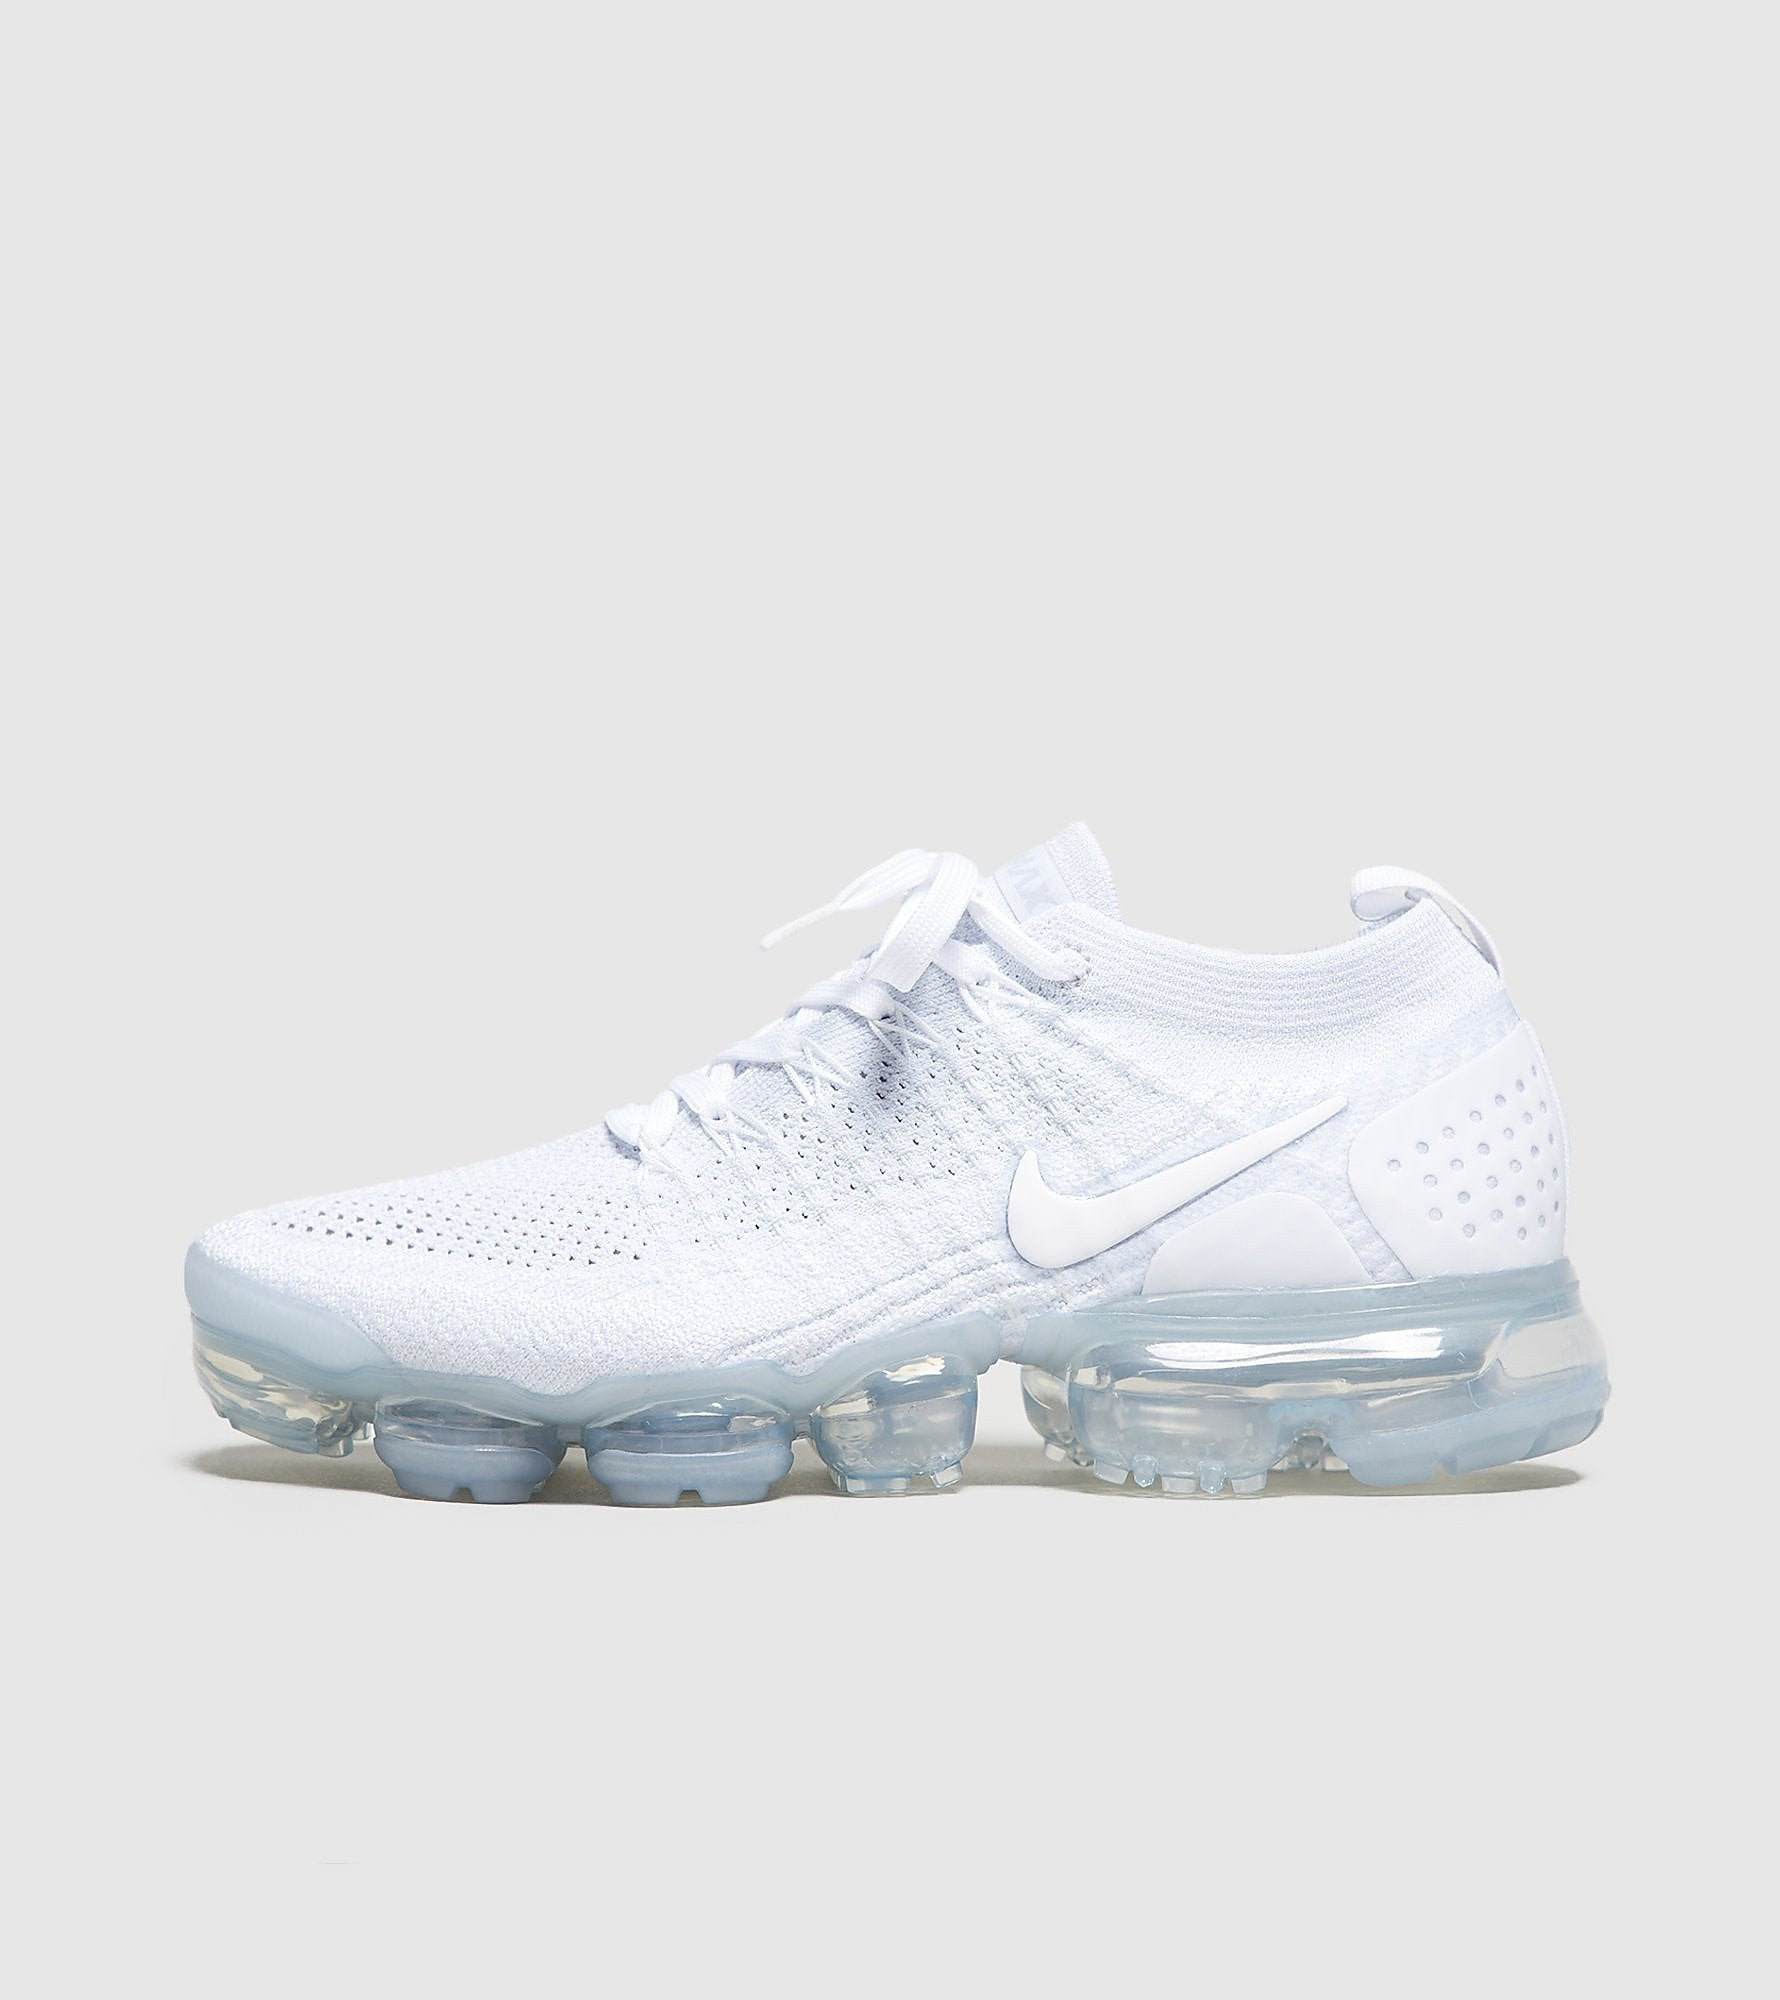 super popular b4a63 bfc9d Nike Nike Air VaporMax Flyknit 2 Women's, White at Soleheaven Curated  Collections